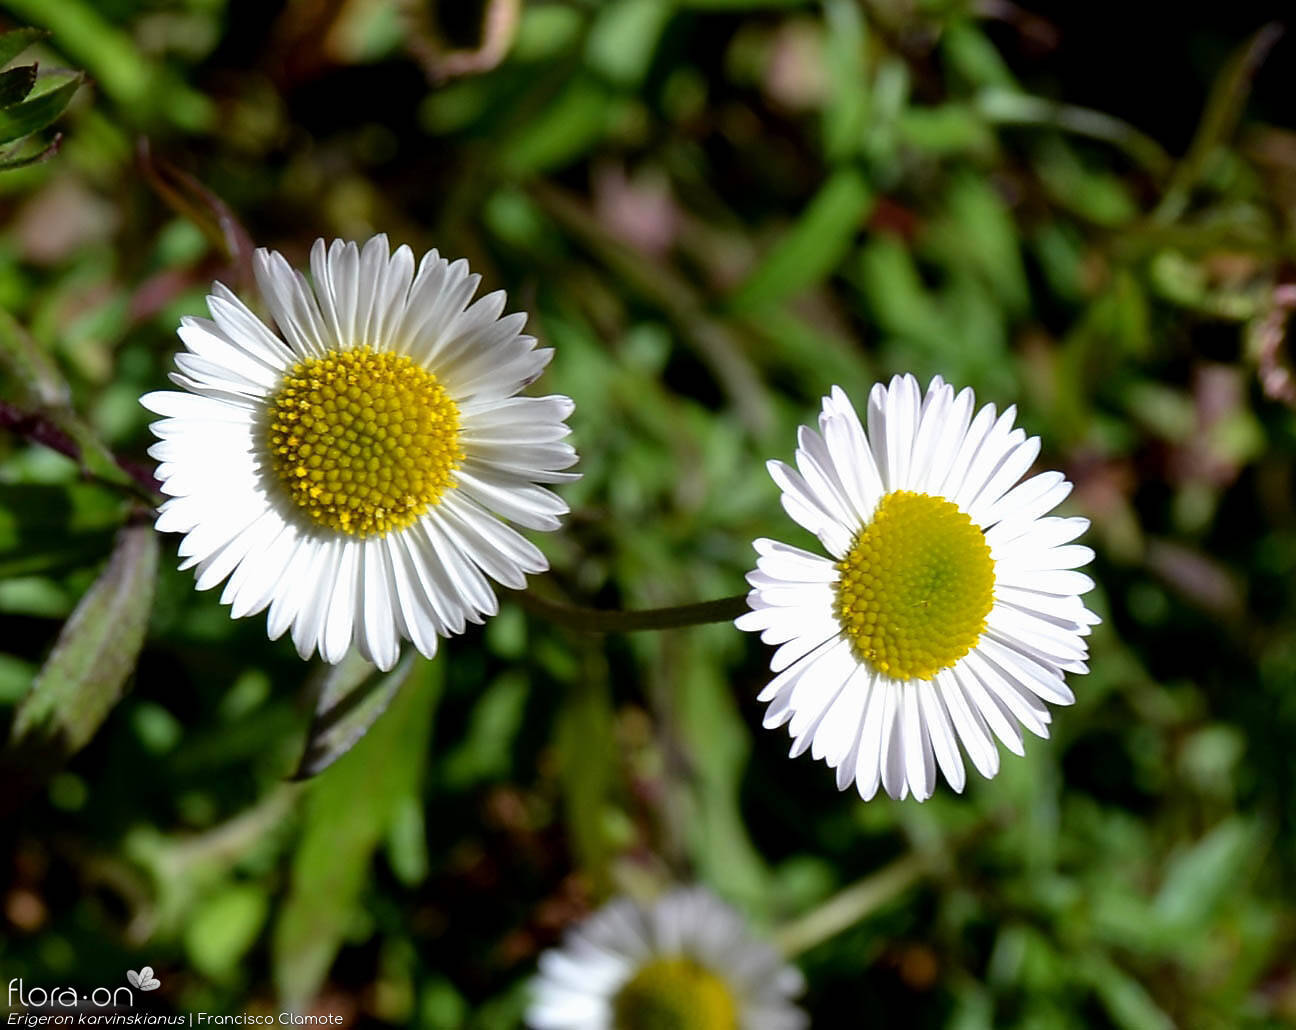 Erigeron karvinskianus - Capítulo | Francisco Clamote; CC BY-NC 4.0